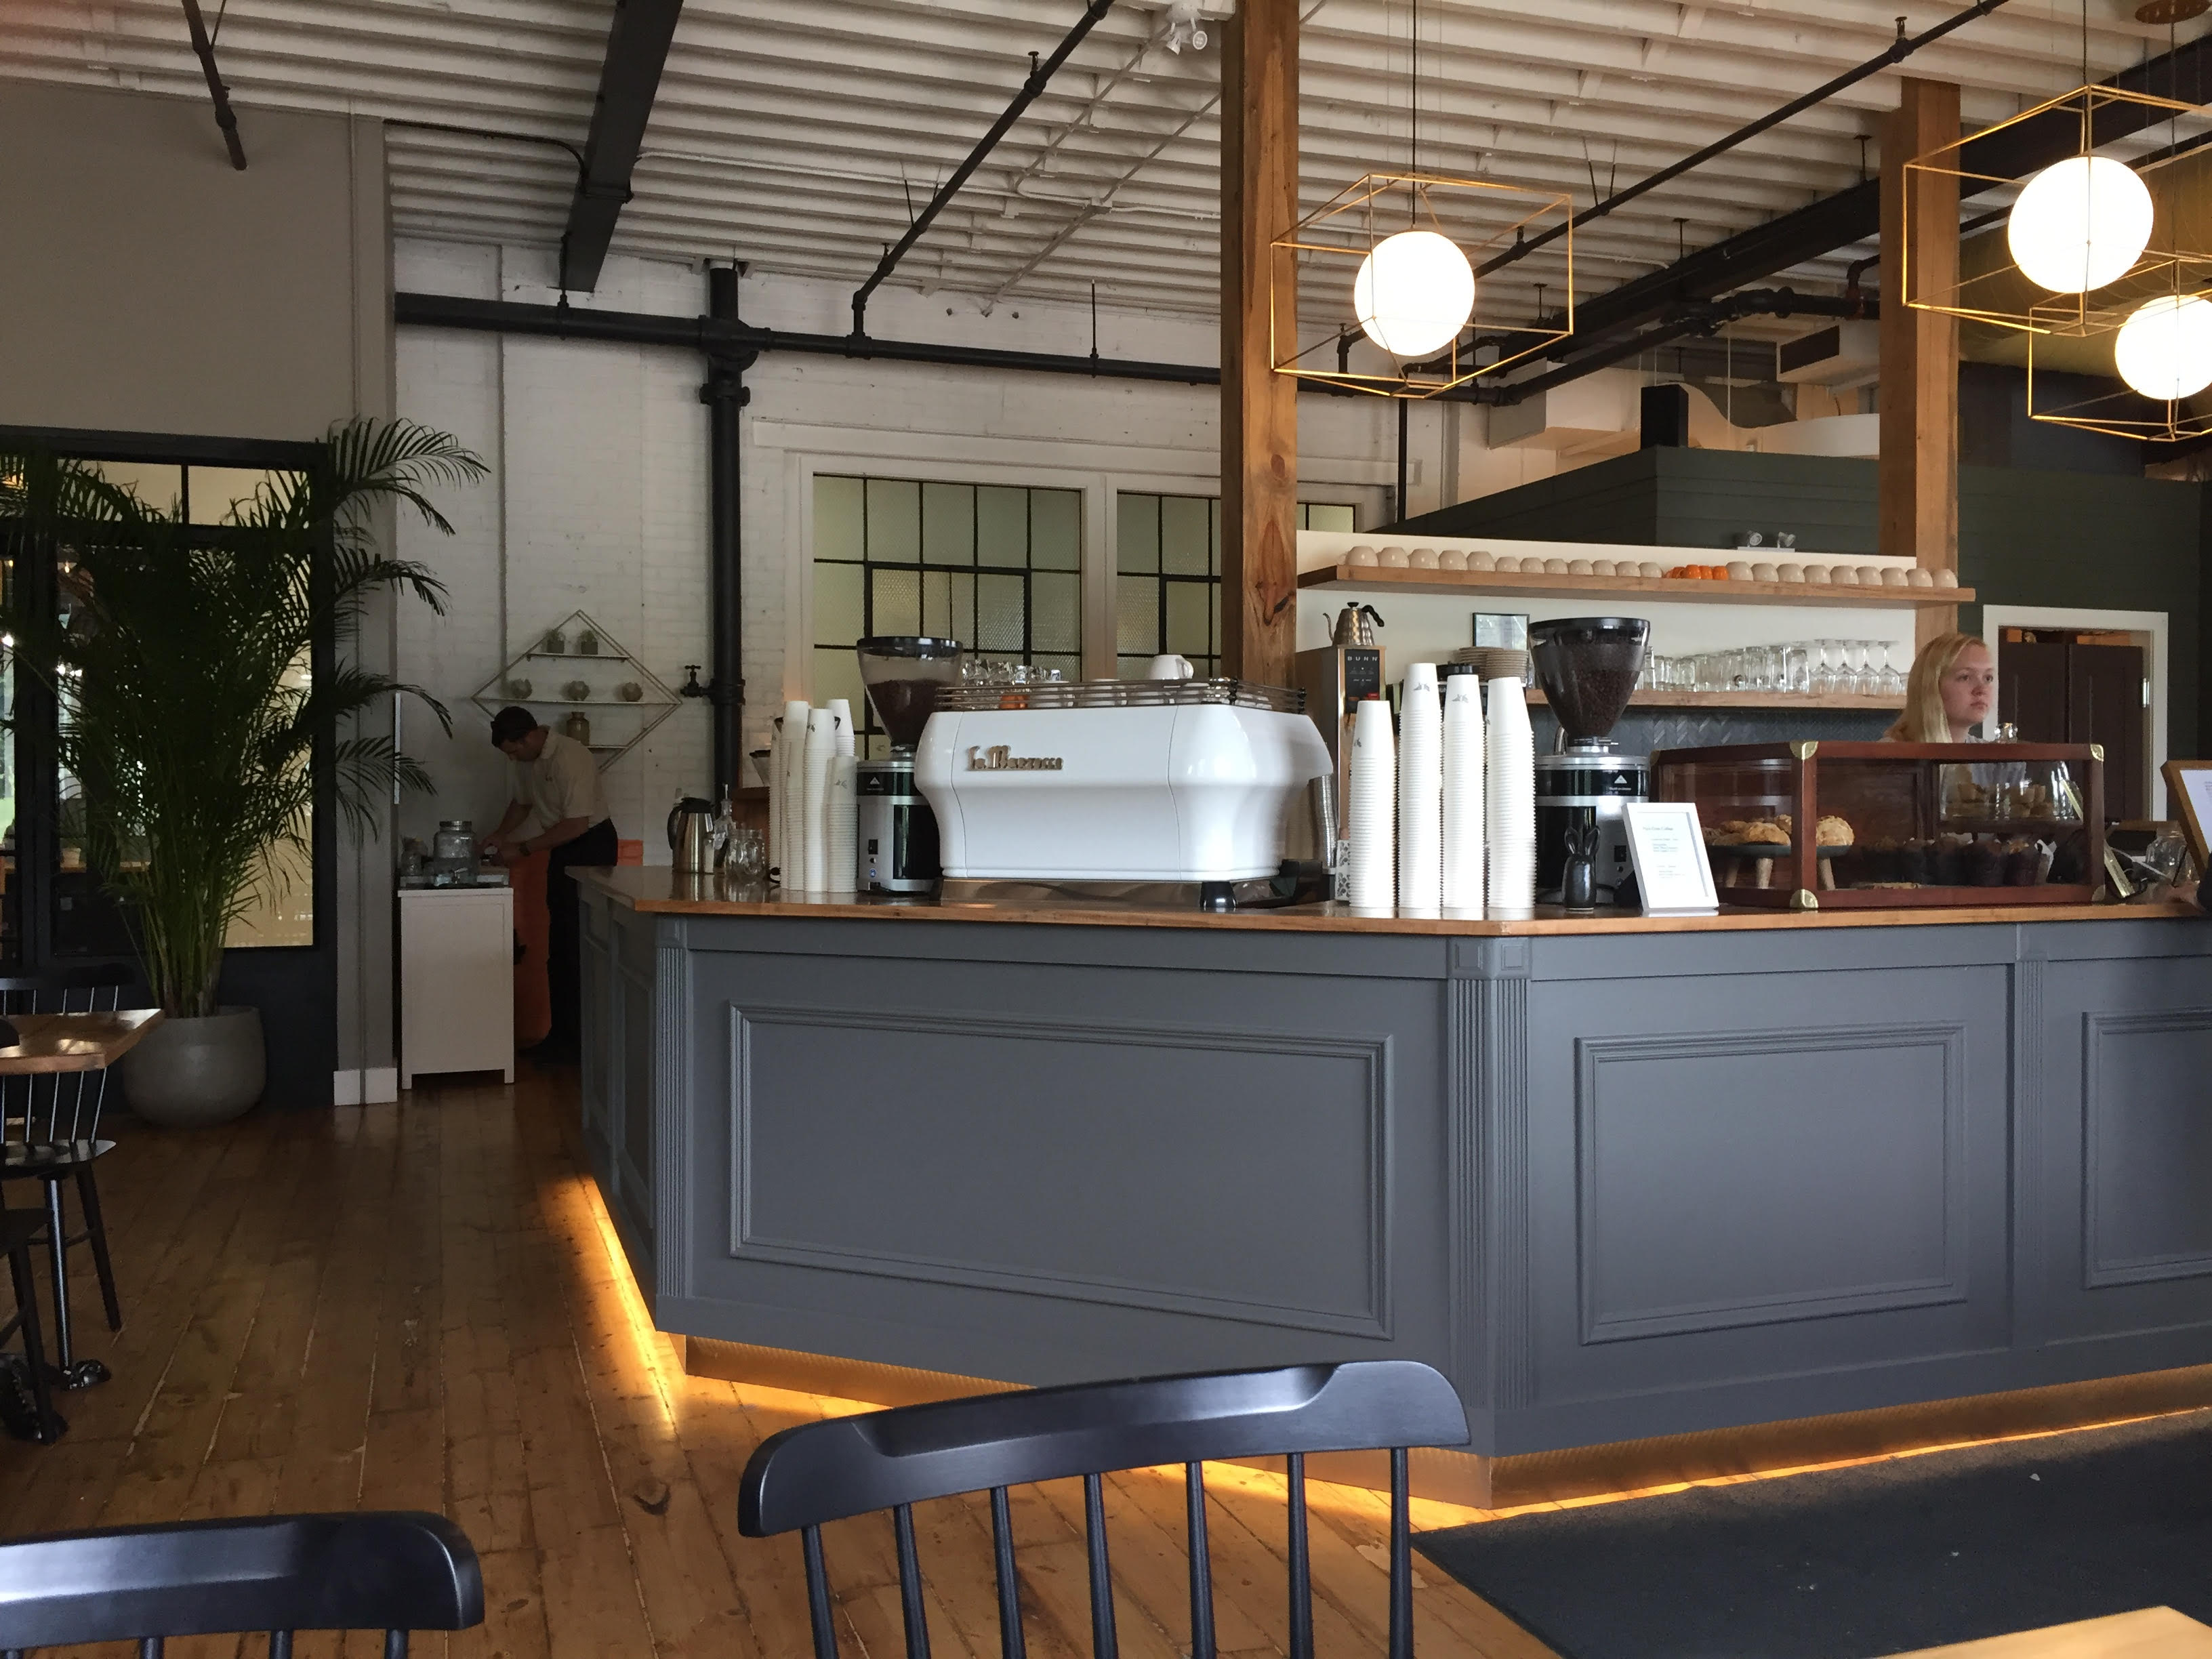 Blackwing Coffee Bar – My Office Away from the Office